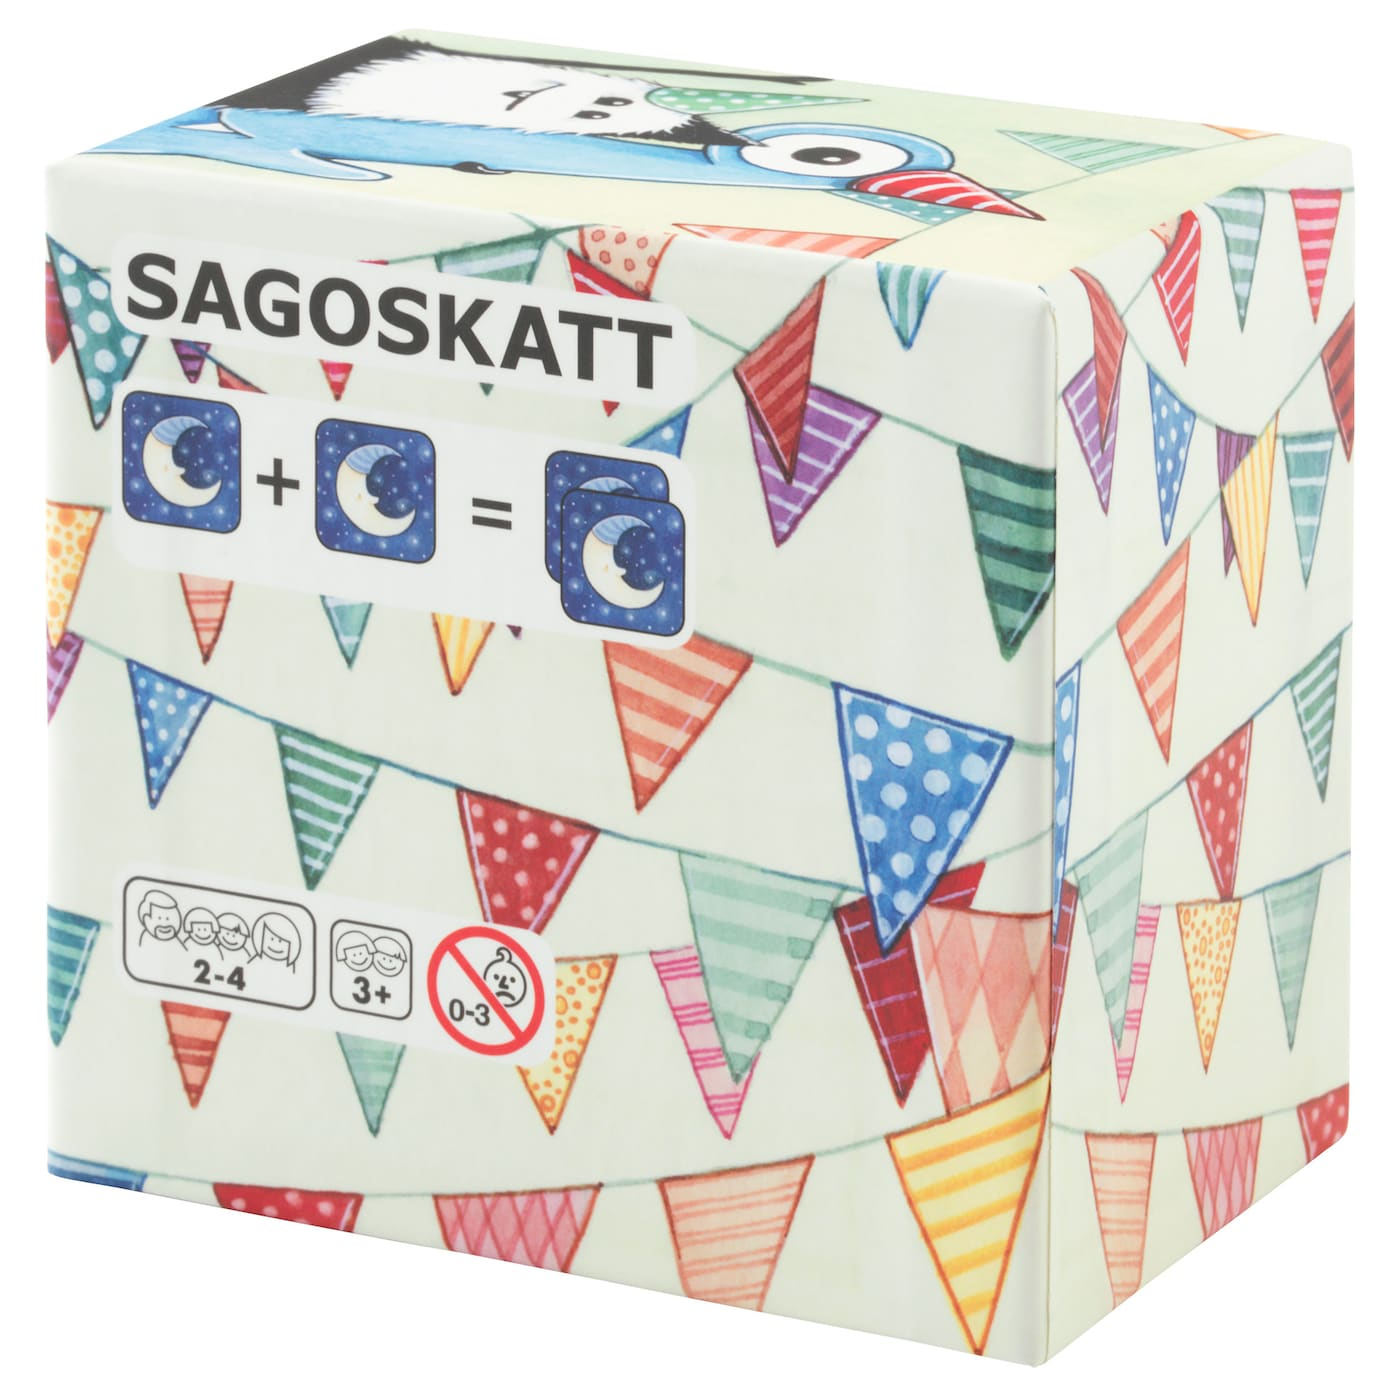 IKEA SAGOSKATT card game, 17 pairs